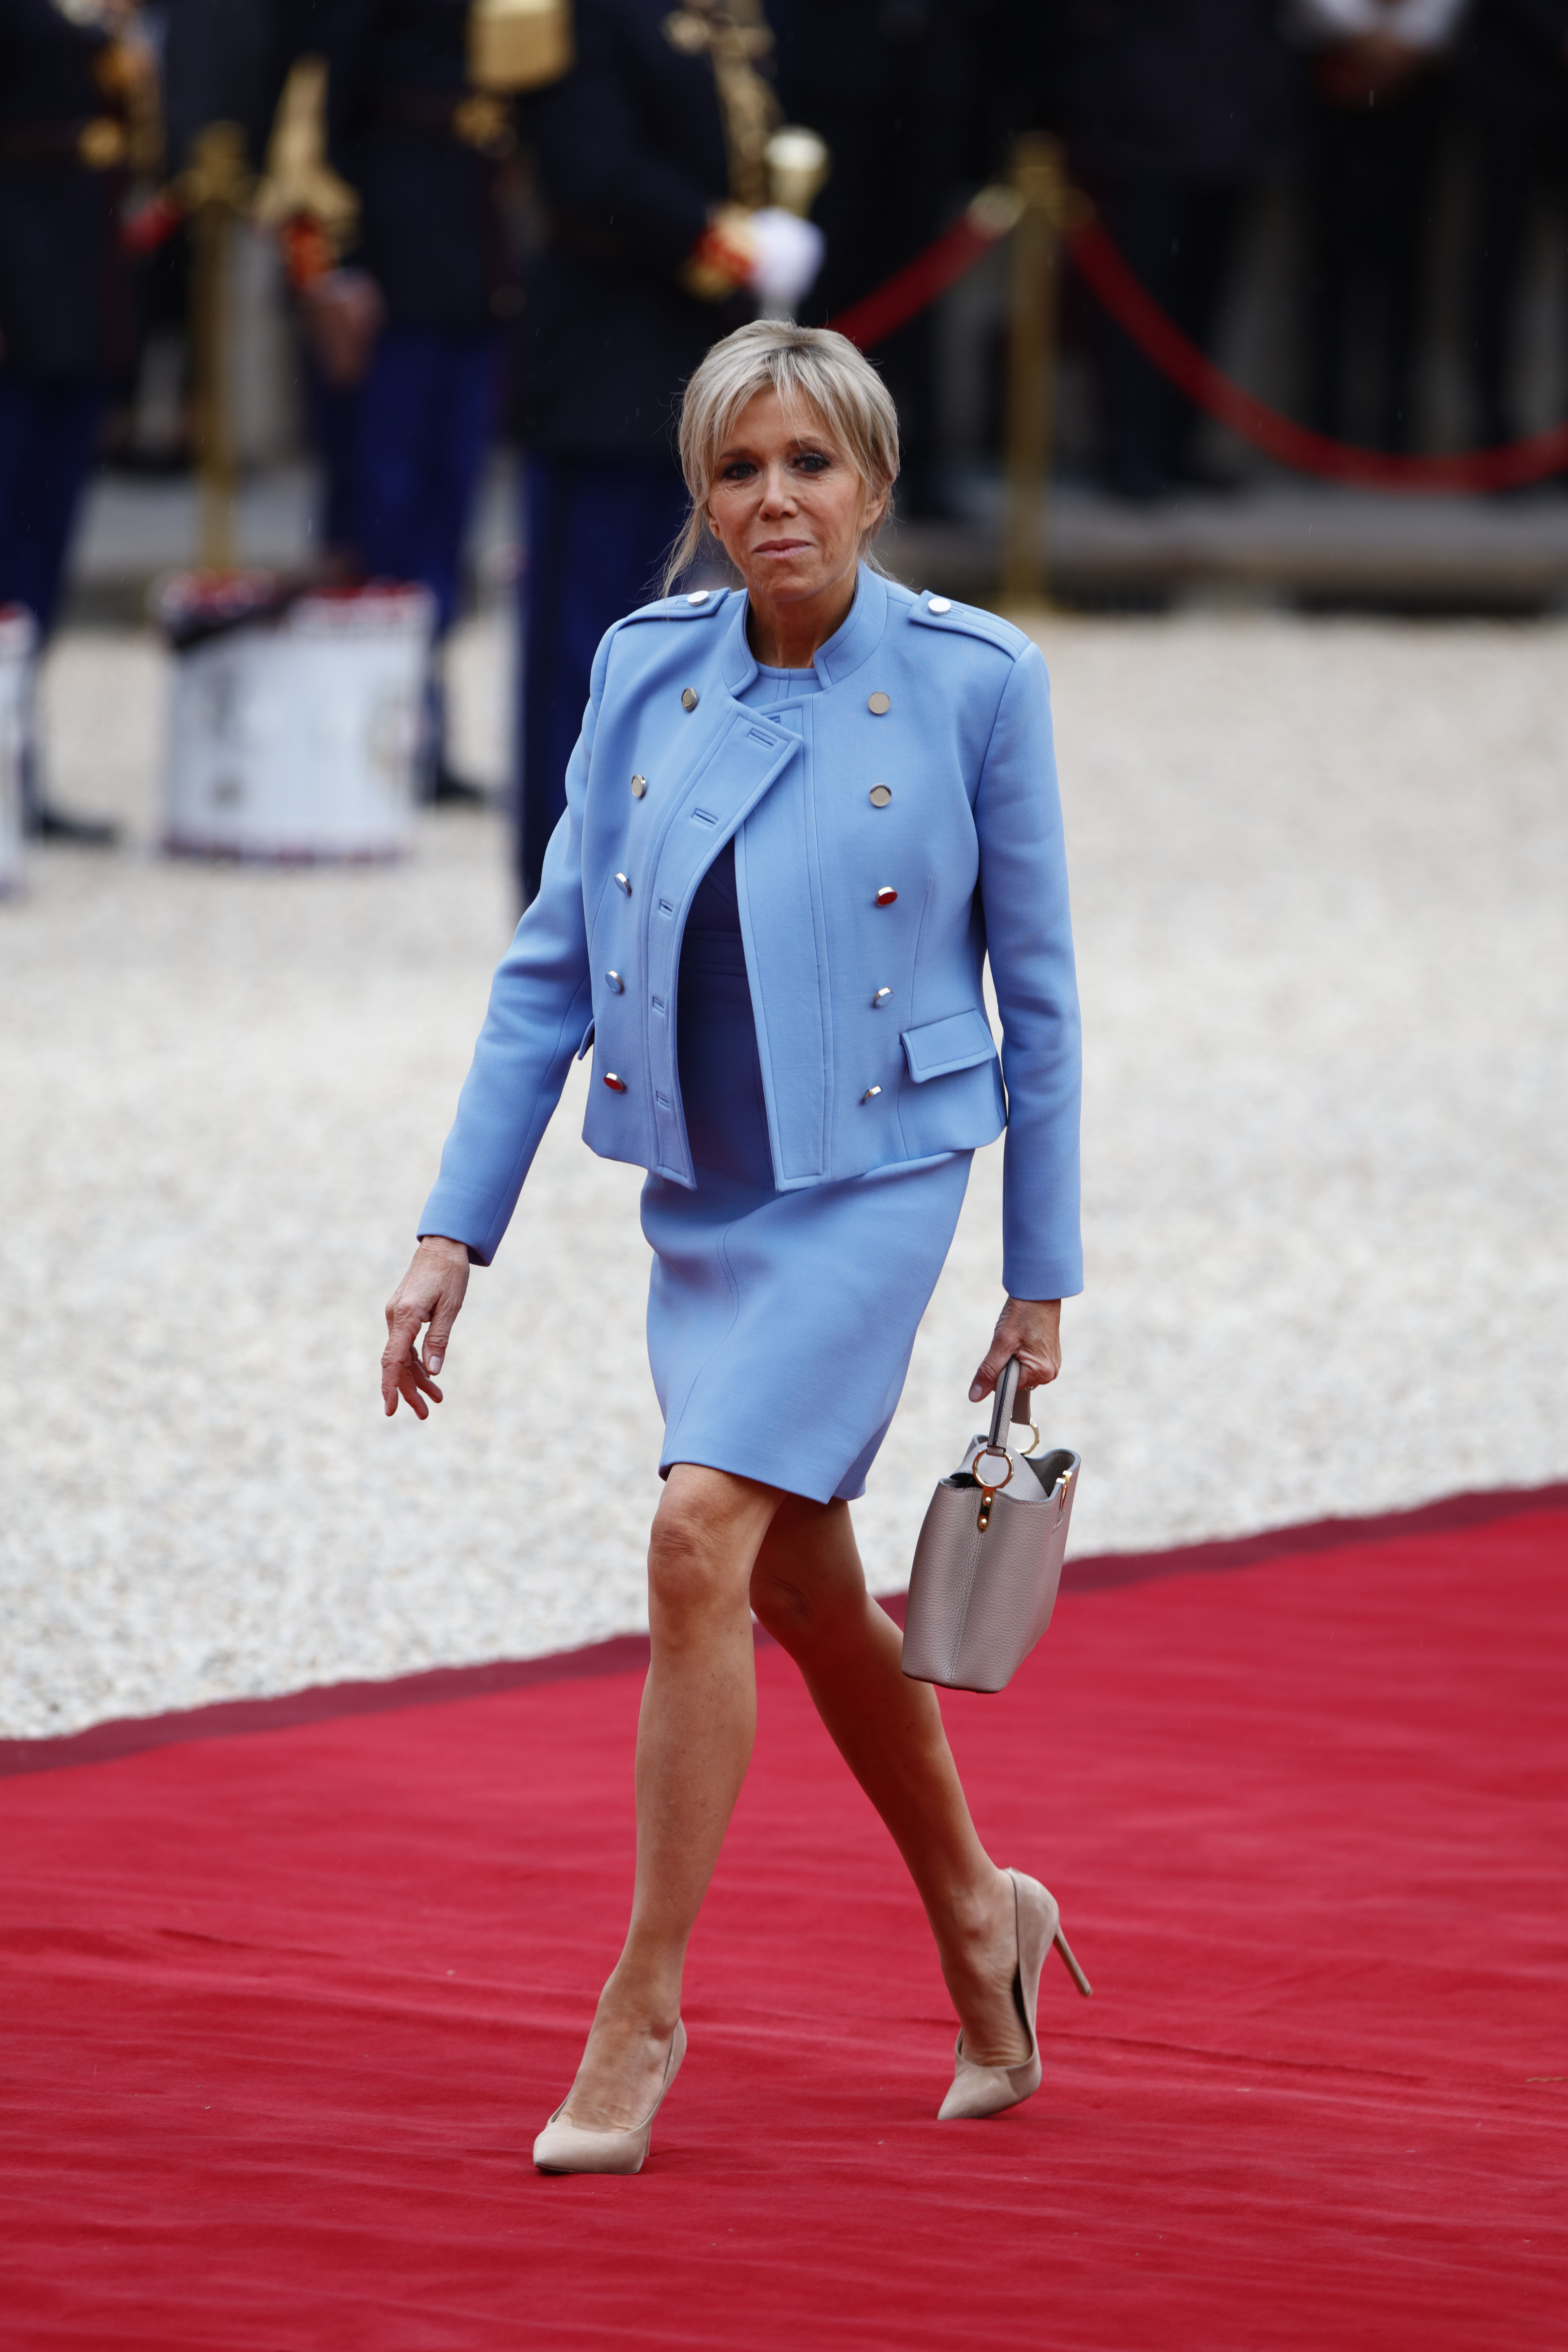 Emmanuel Macron becomes the new President of France during his inauguration ceremony alongside former President Francois Hollande at the Elysee Palace in Paris, France.  <P> Pictured: Emmanuel Macron, Brigitte Trogneux <B>Ref: SPL1497741  140517  </B><BR/> Picture by: Splash News<BR/> </P><P> <B>Splash News and Pictures</B><BR/> Los Angeles:310-821-2666<BR/> New York:212-619-2666<BR/> London:870-934-2666<BR/> <span id=